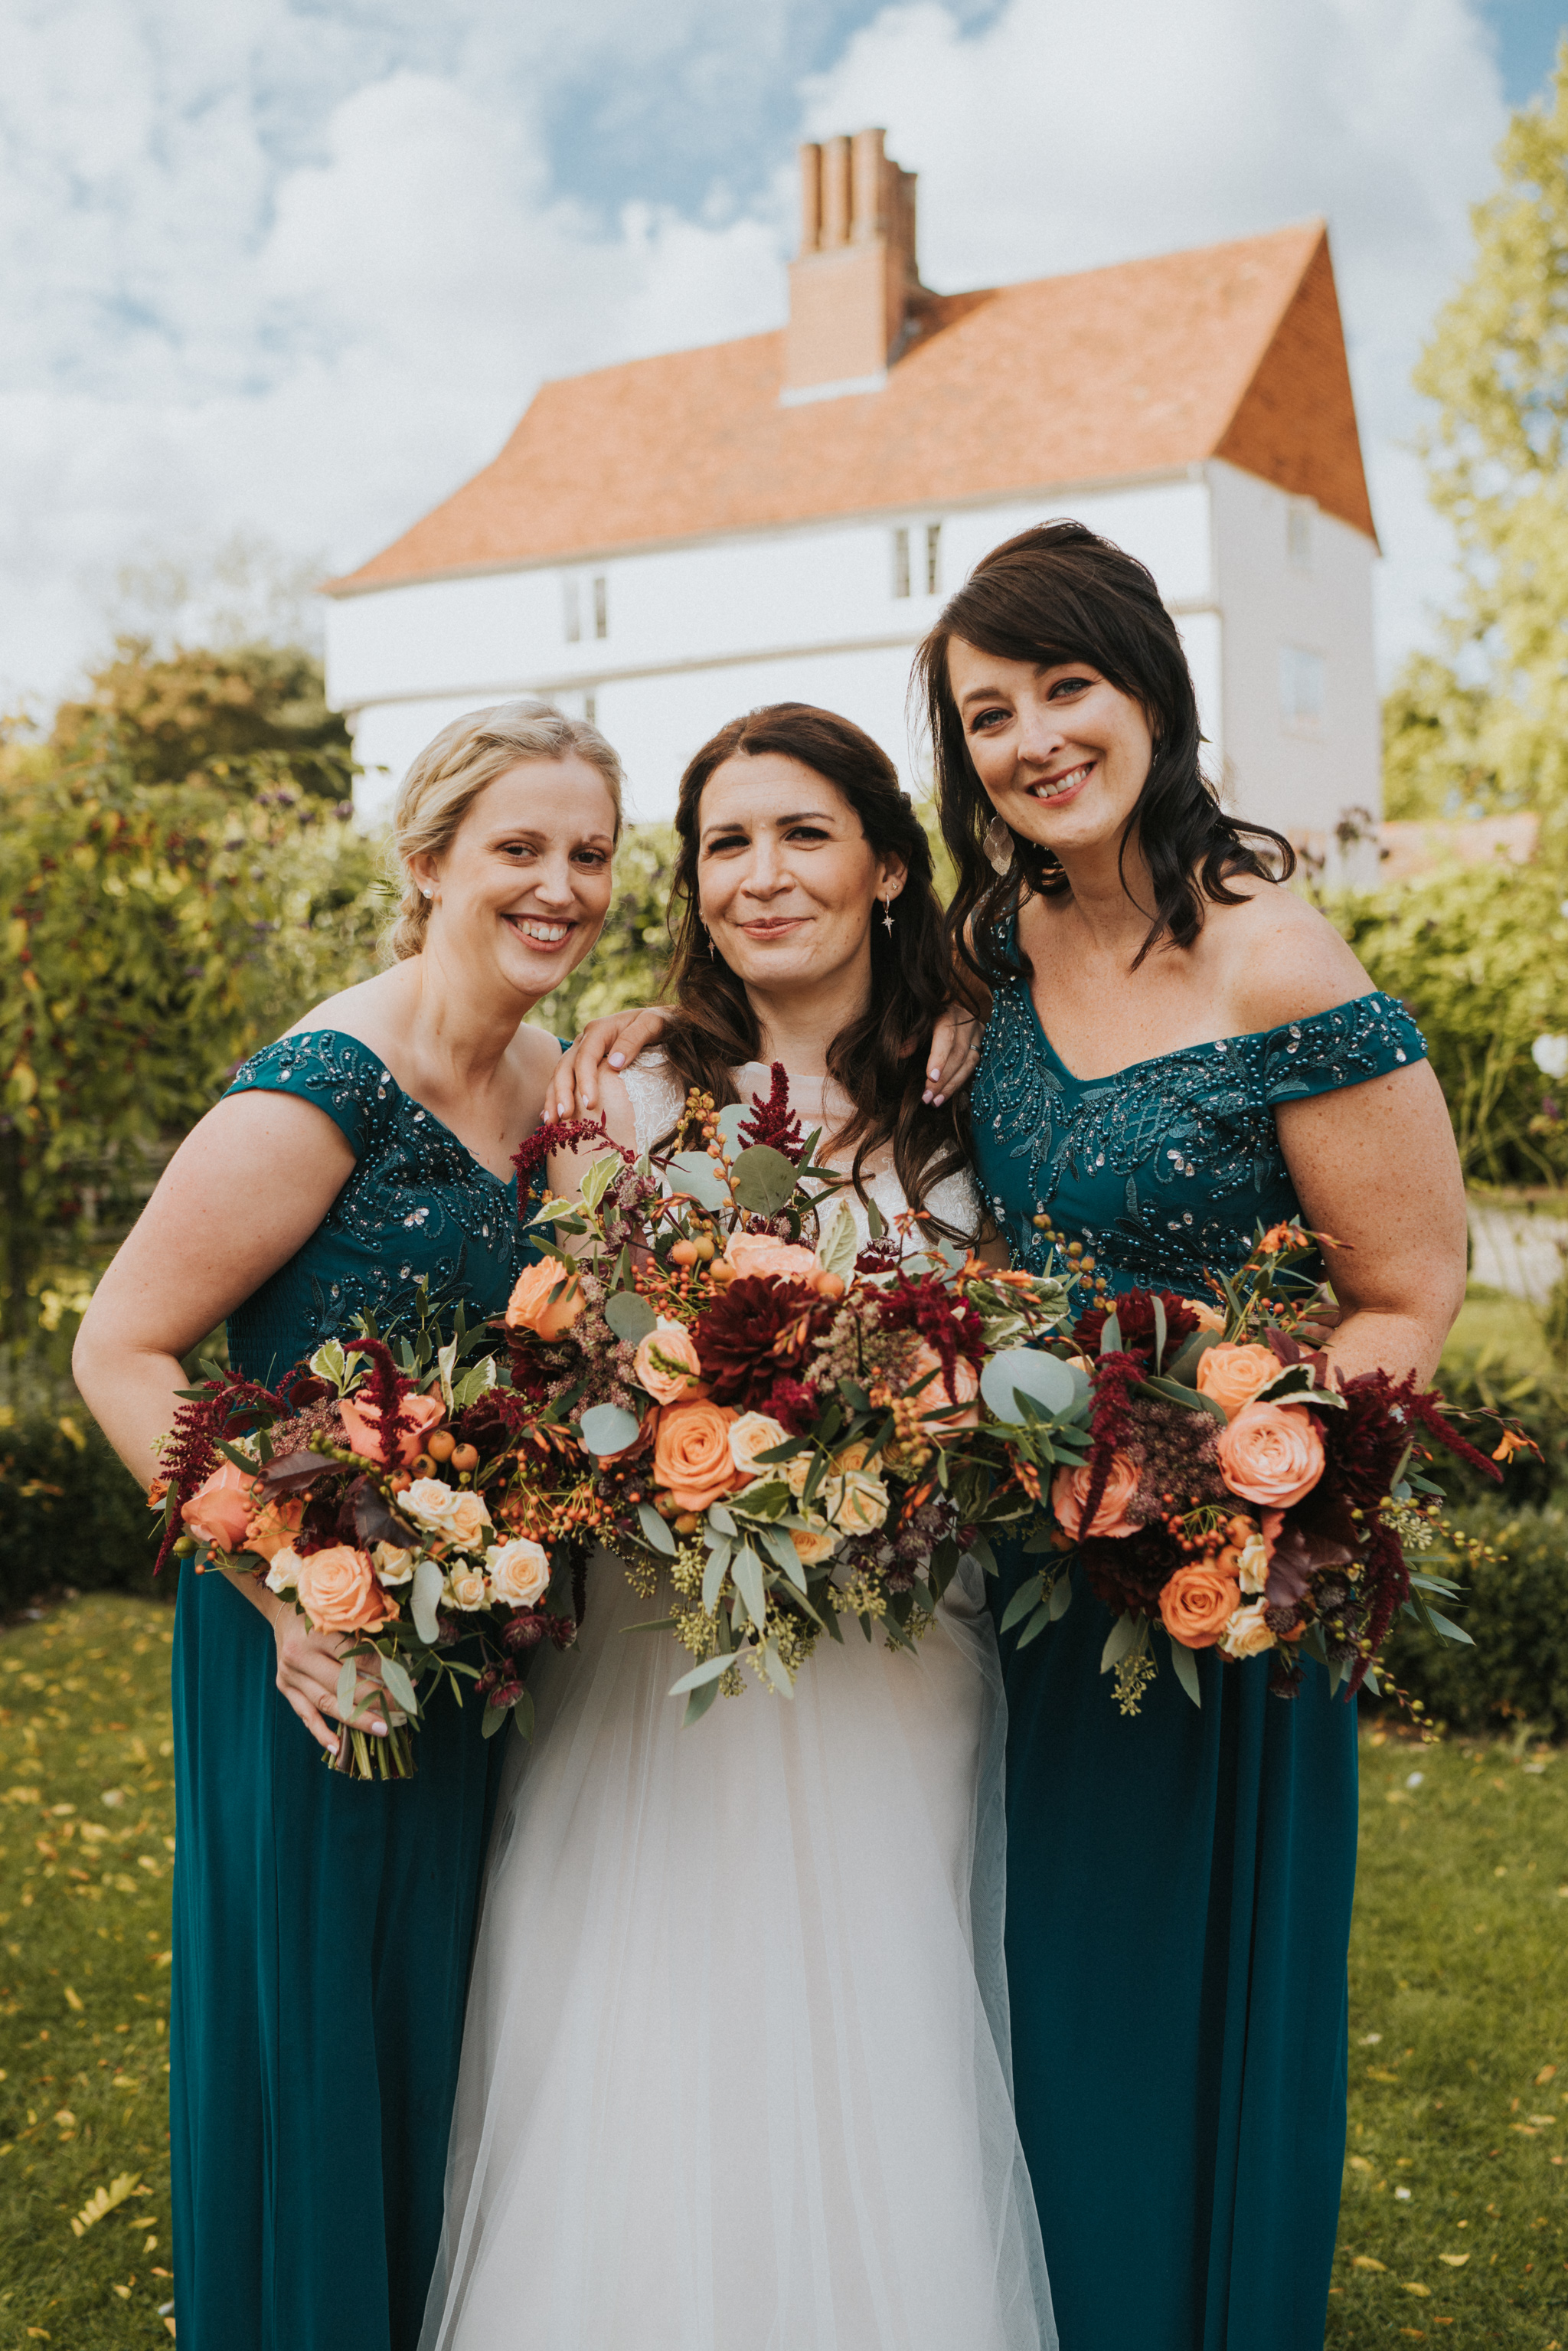 natalie-john-houchins-grace-elizabeth-colchester-essex-alternative-wedding-photographer-essex-devon-suffolk-norfolk (45 of 64).jpg